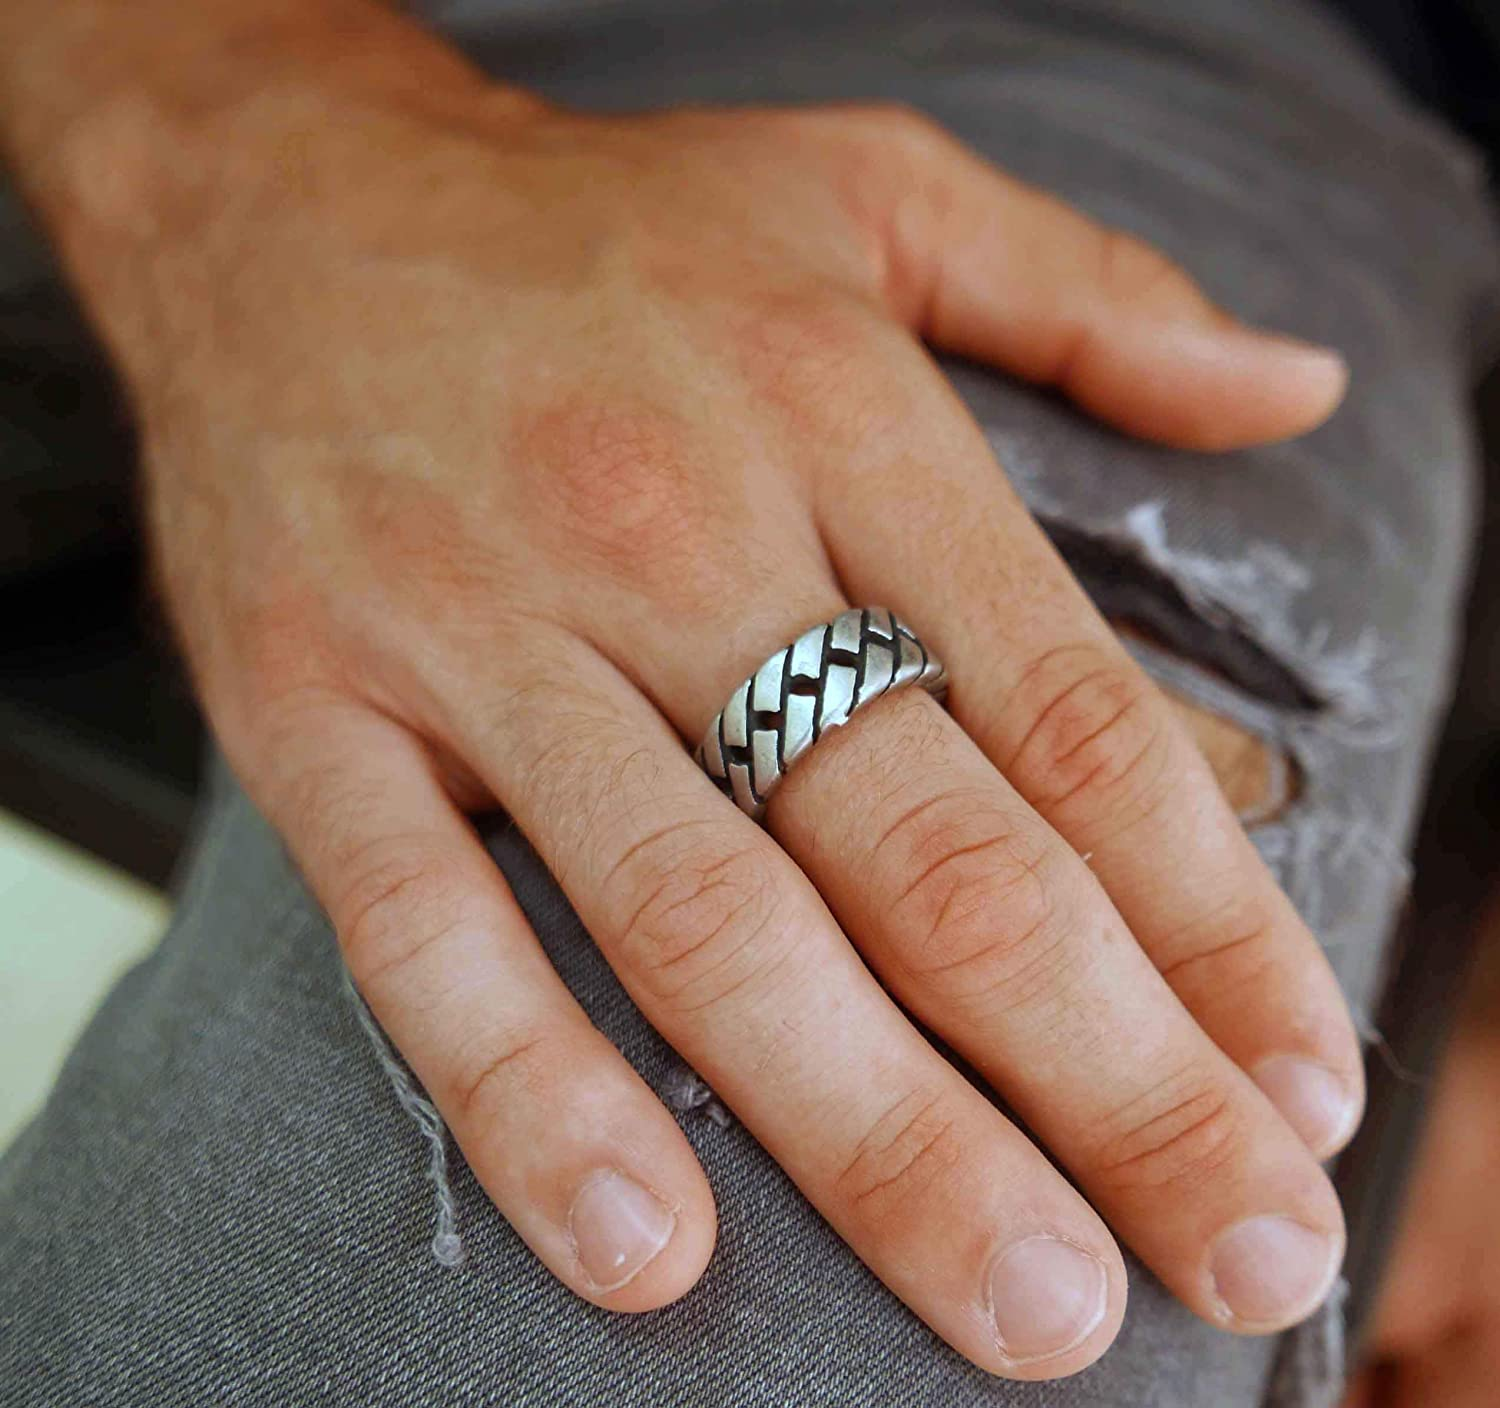 Ring Size US11 Handmade Stainless Steel Ring For Men By Galis Jewelry Silver Ring For Men Jewelry For Men